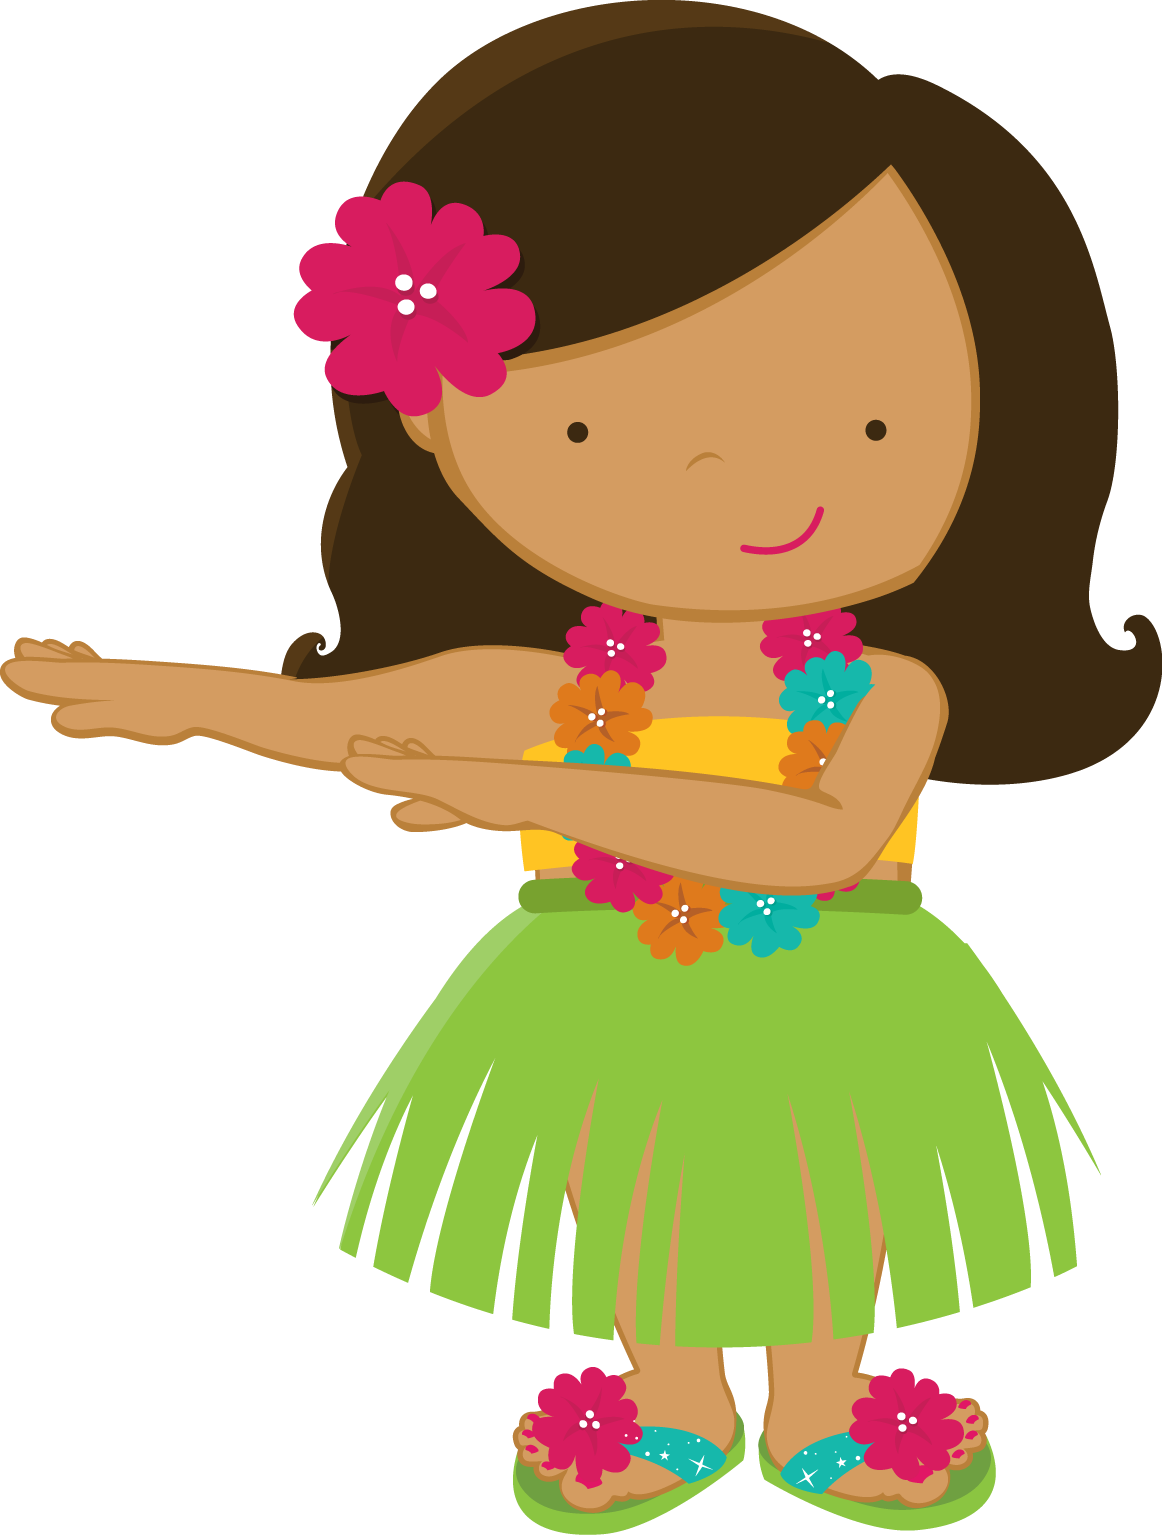 zwd yellow hibiscus zwd hula girl 01 png minus clipart rh pinterest com hawaiian clip art free downloads hawaiian clip art black and white